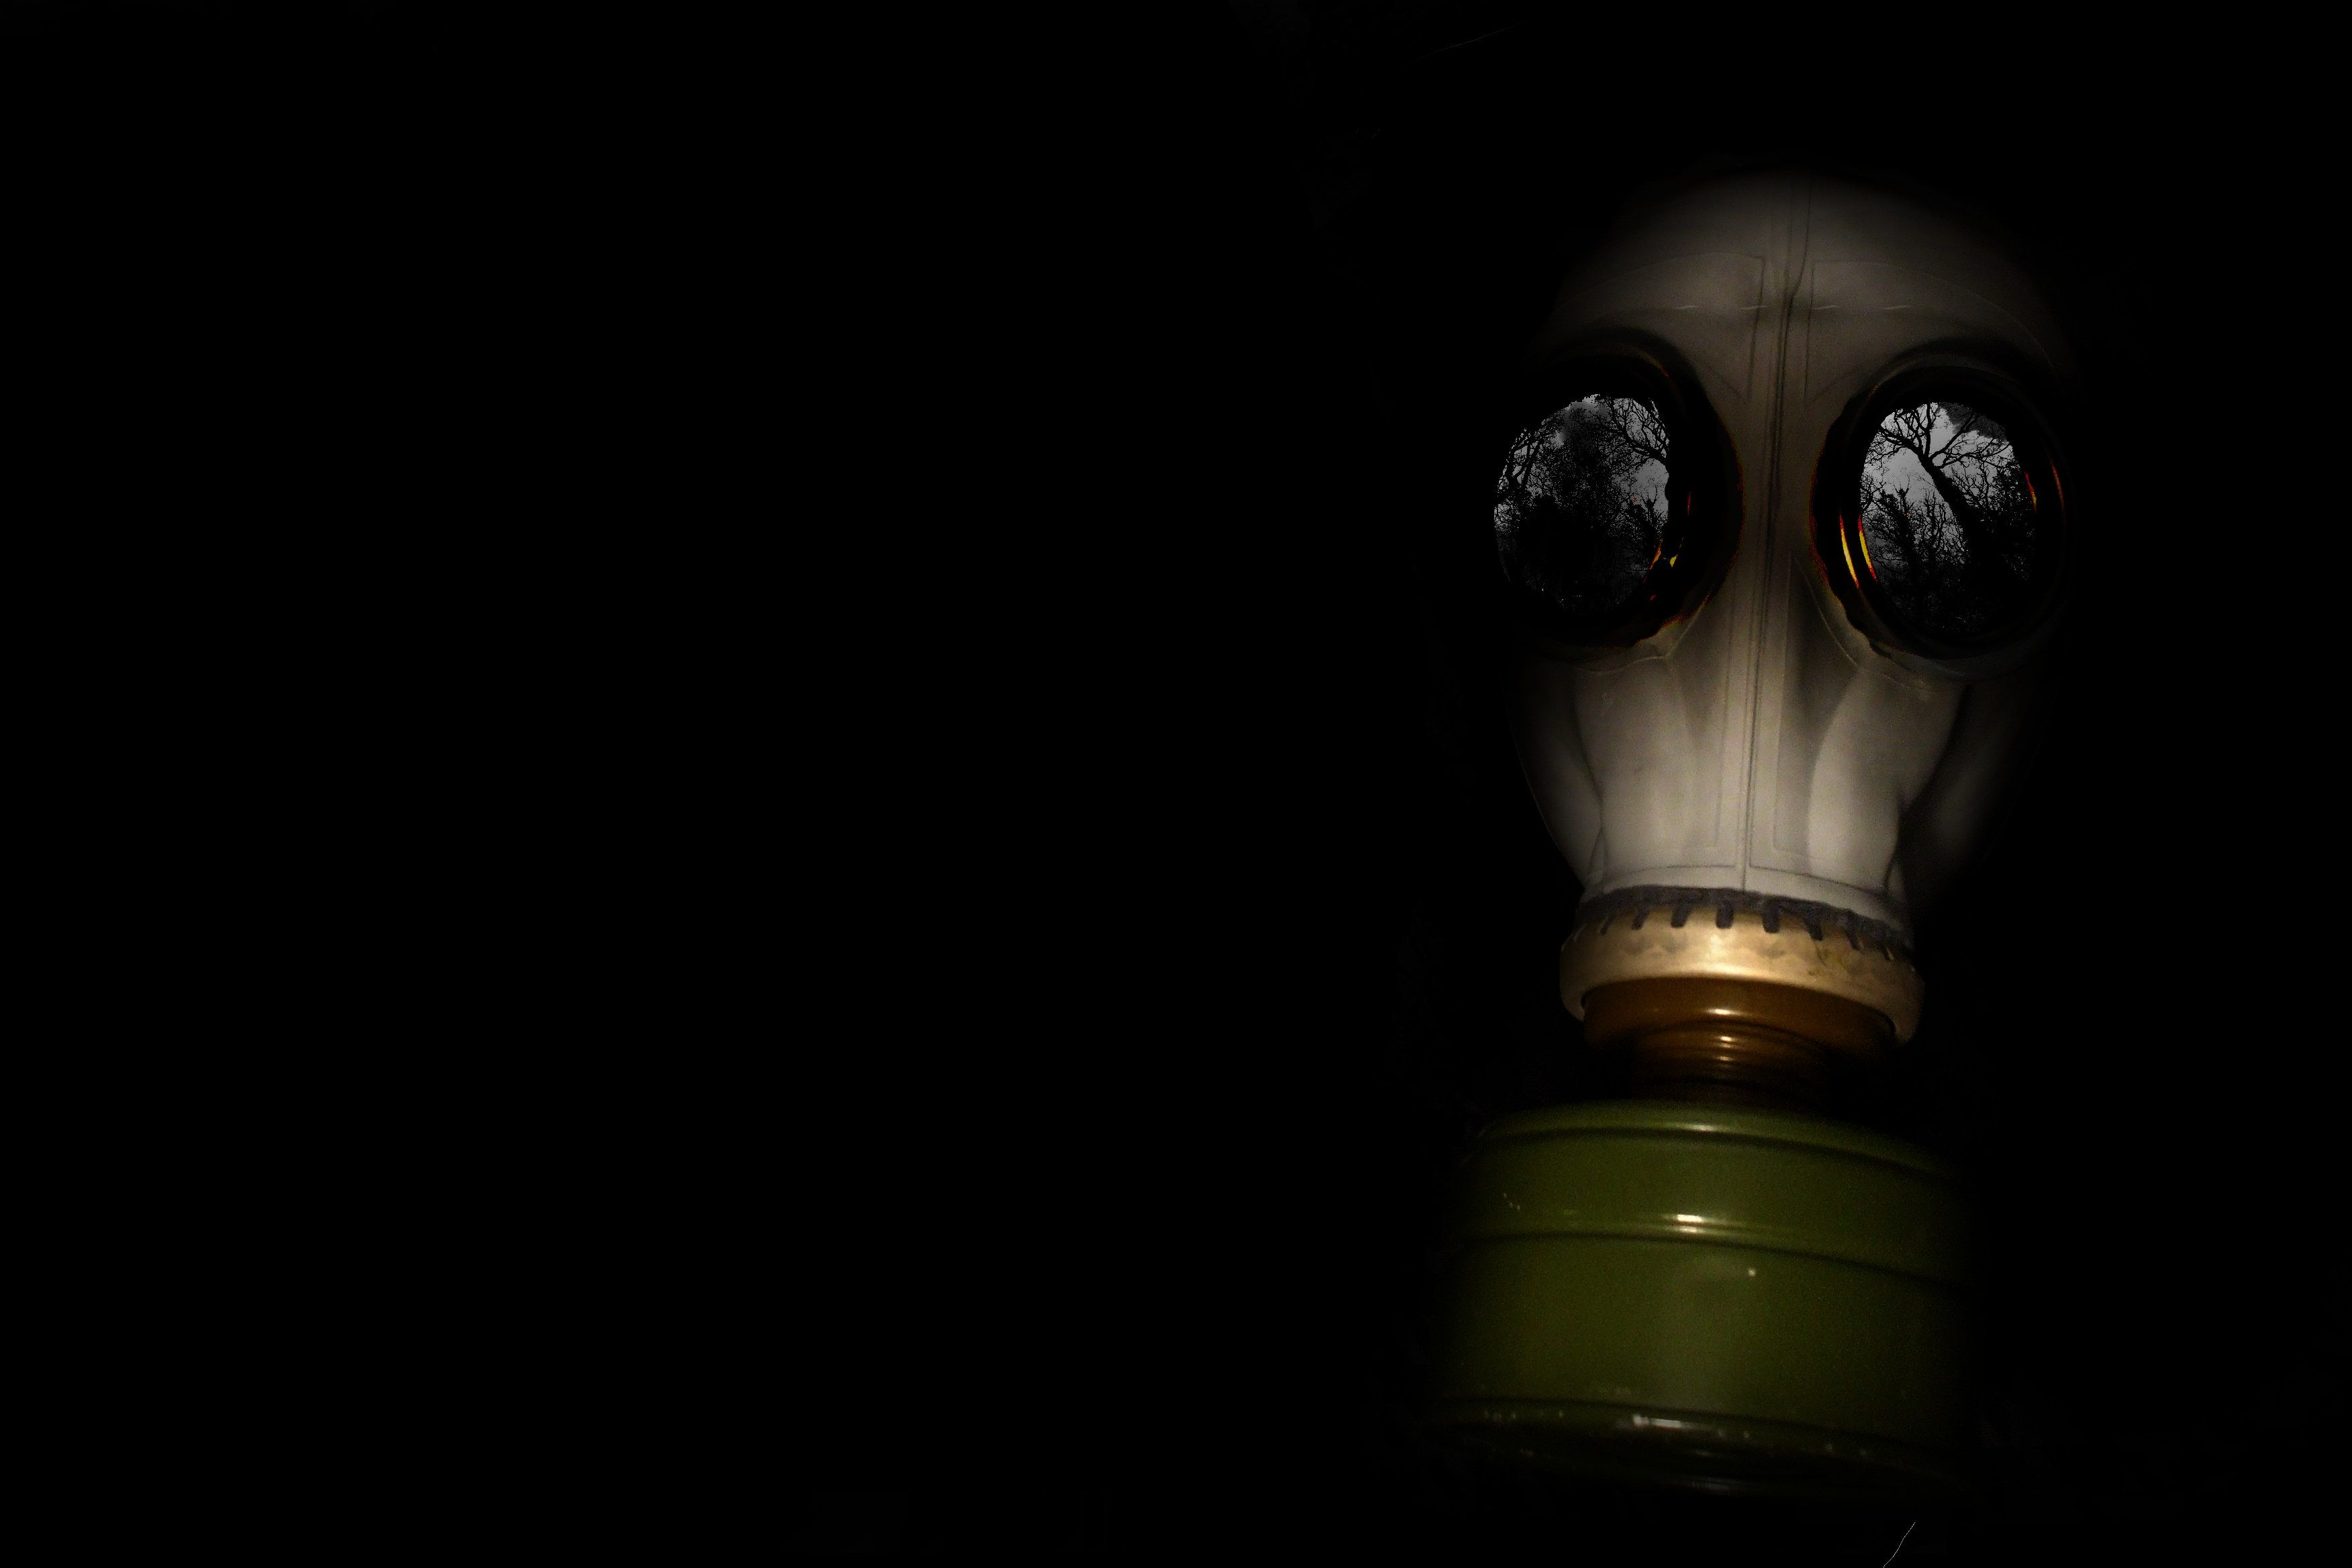 25 Gas Mask Wallpapers Gas Mask Backgrounds Gas Mask Hd Wallpaper Gas Mask Girl